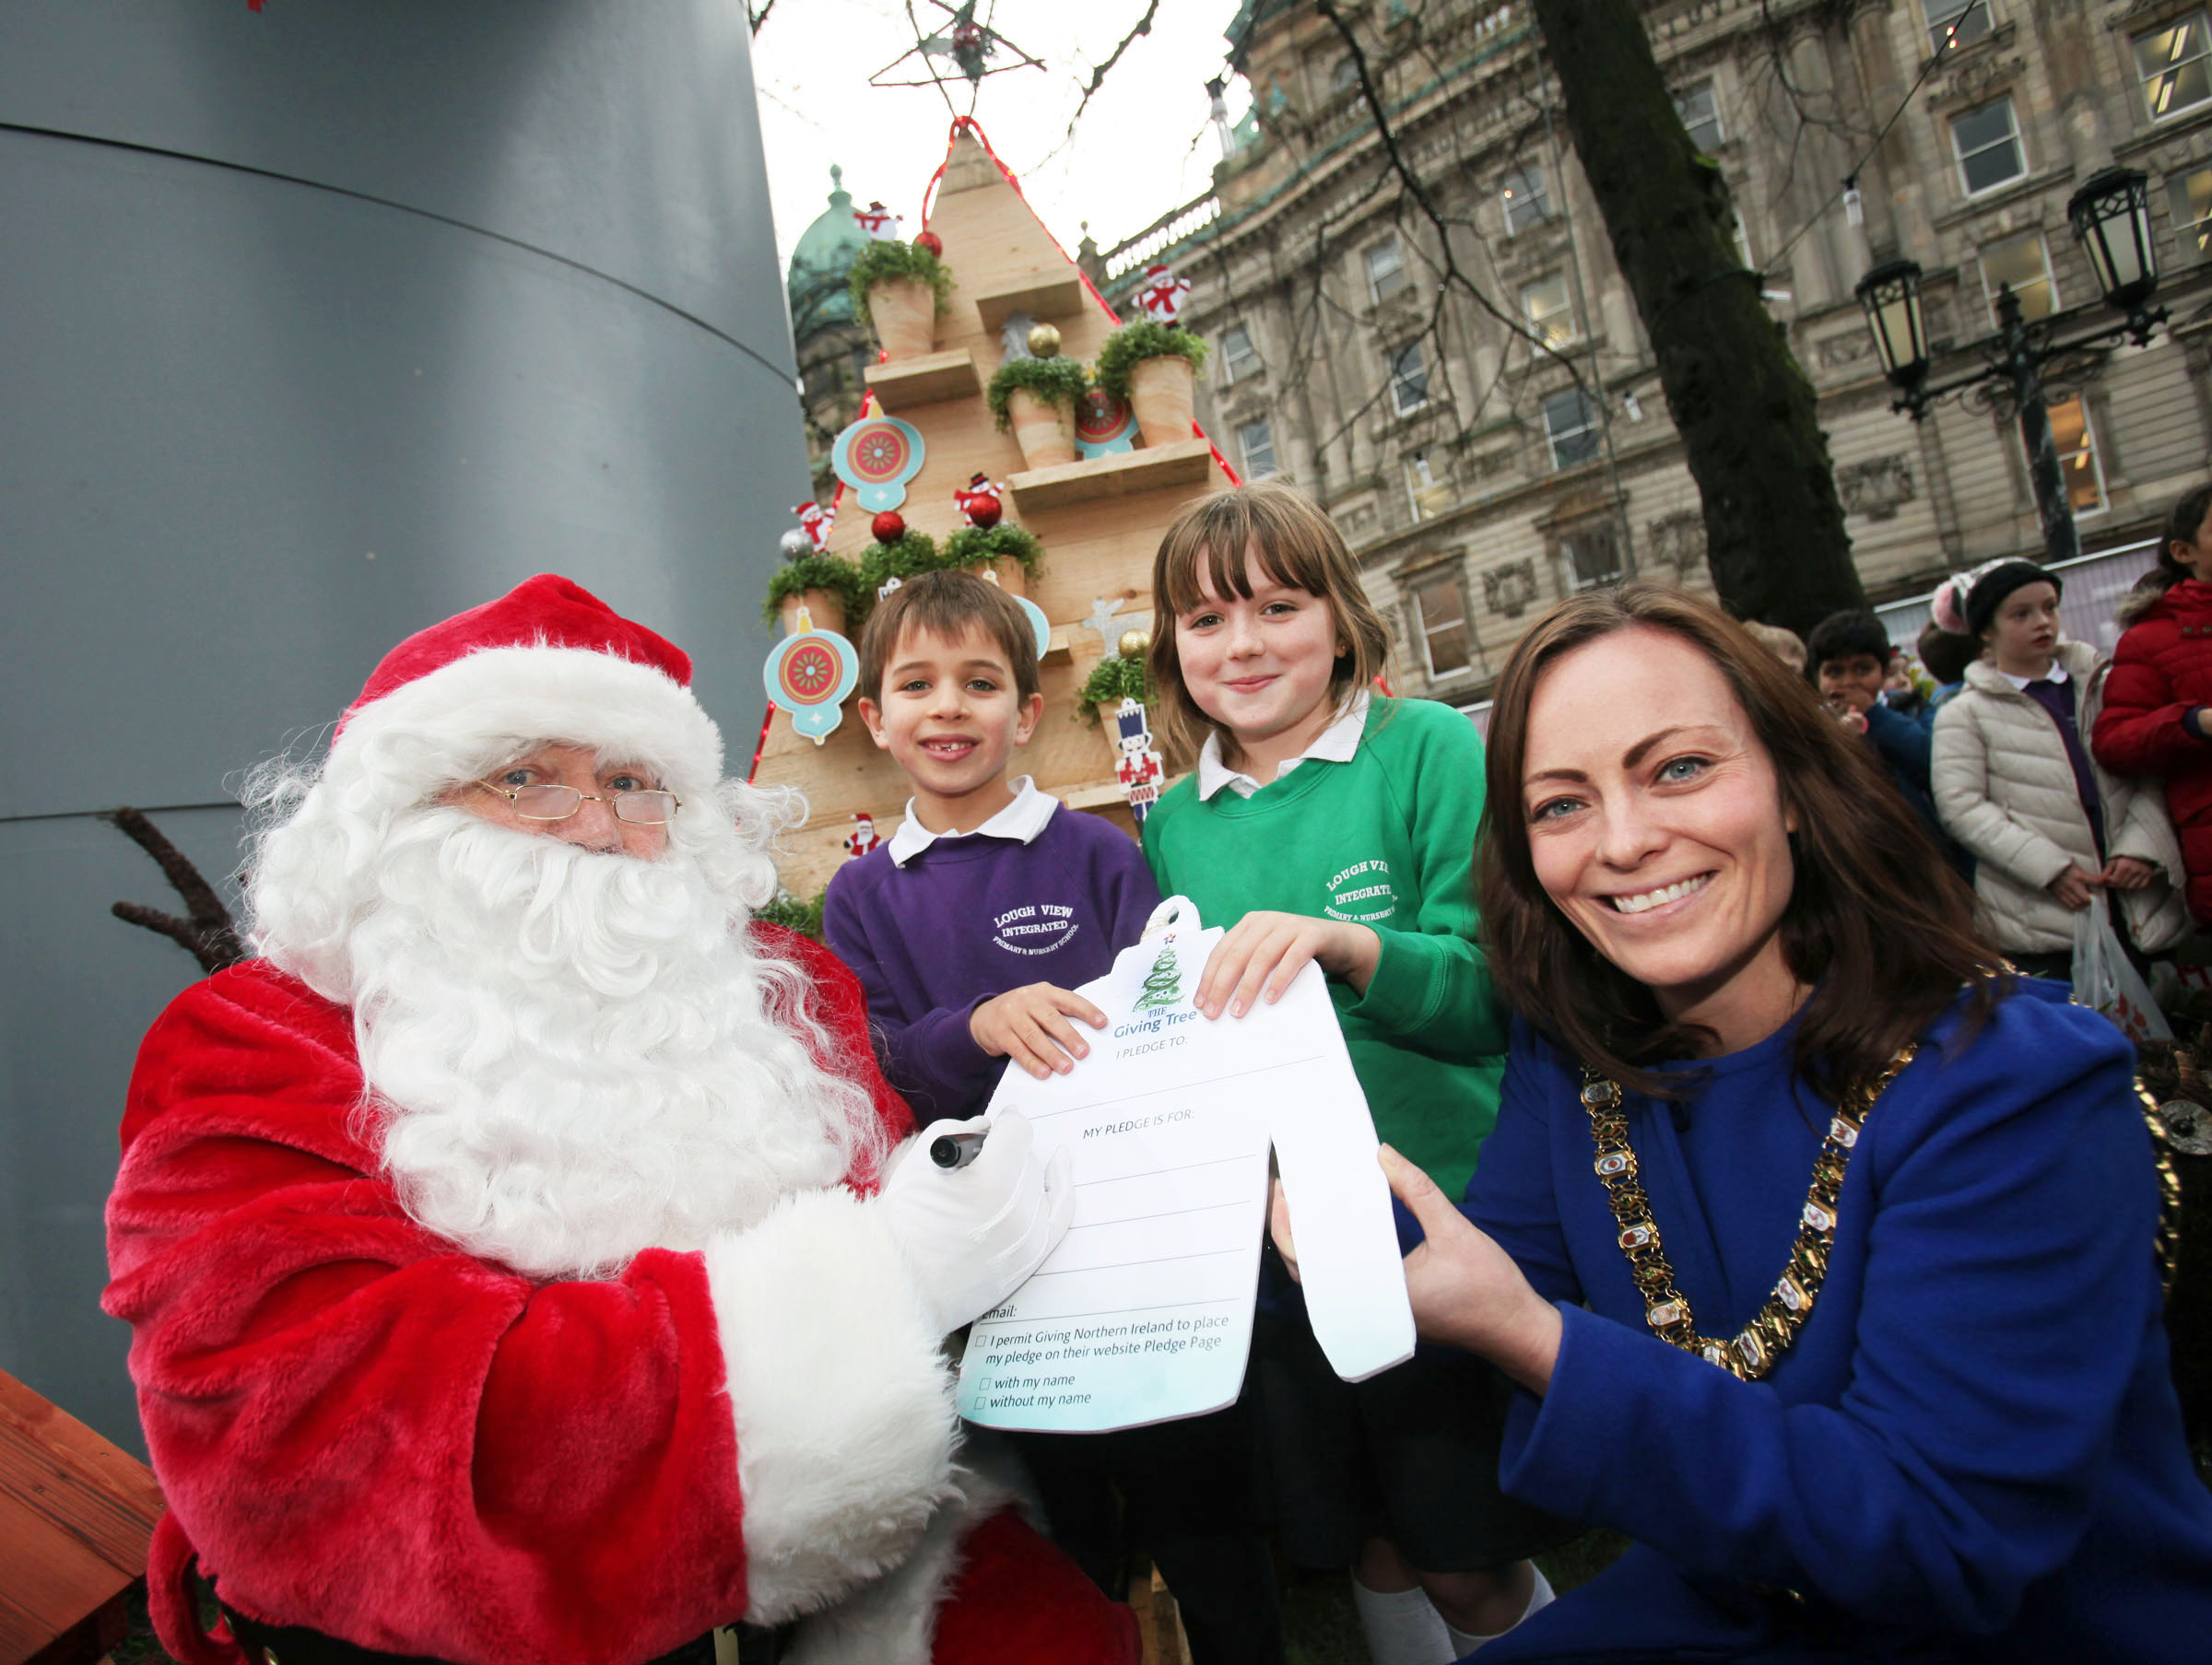 Belfast Christmas Market branches out by hosting charity Giving Tree